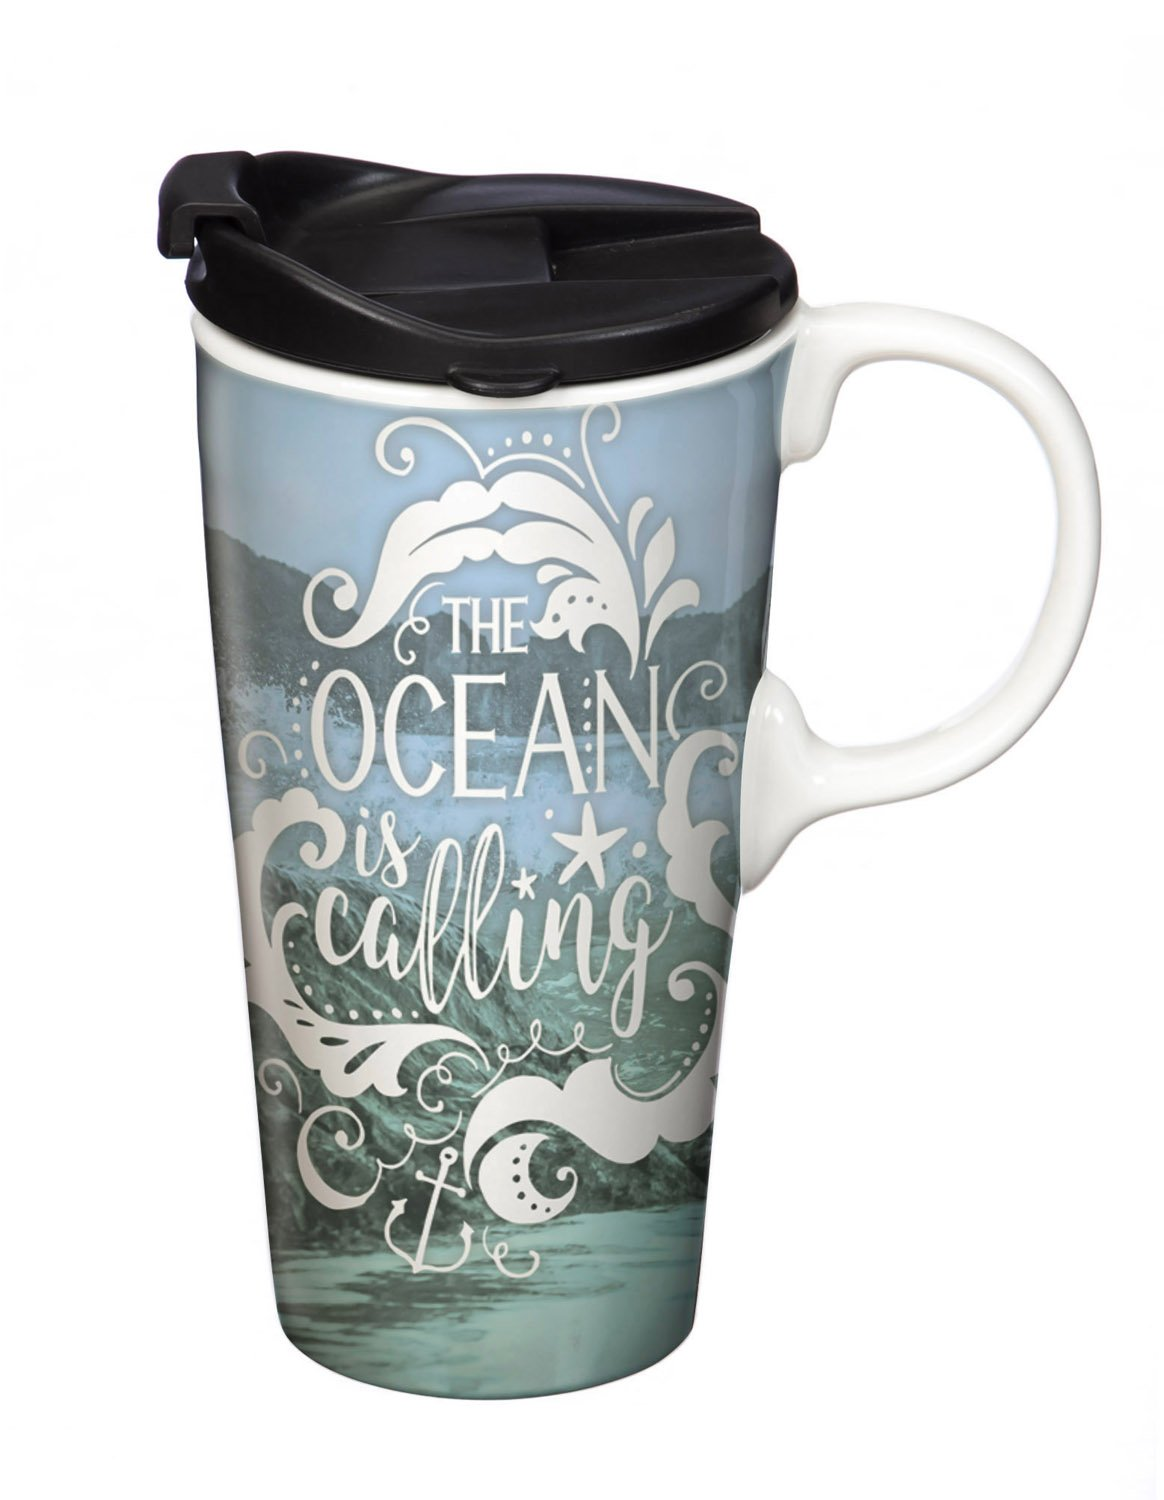 Cypress Home Water Ceramic Travel Coffee Mug with Gift Box, 17 ounces